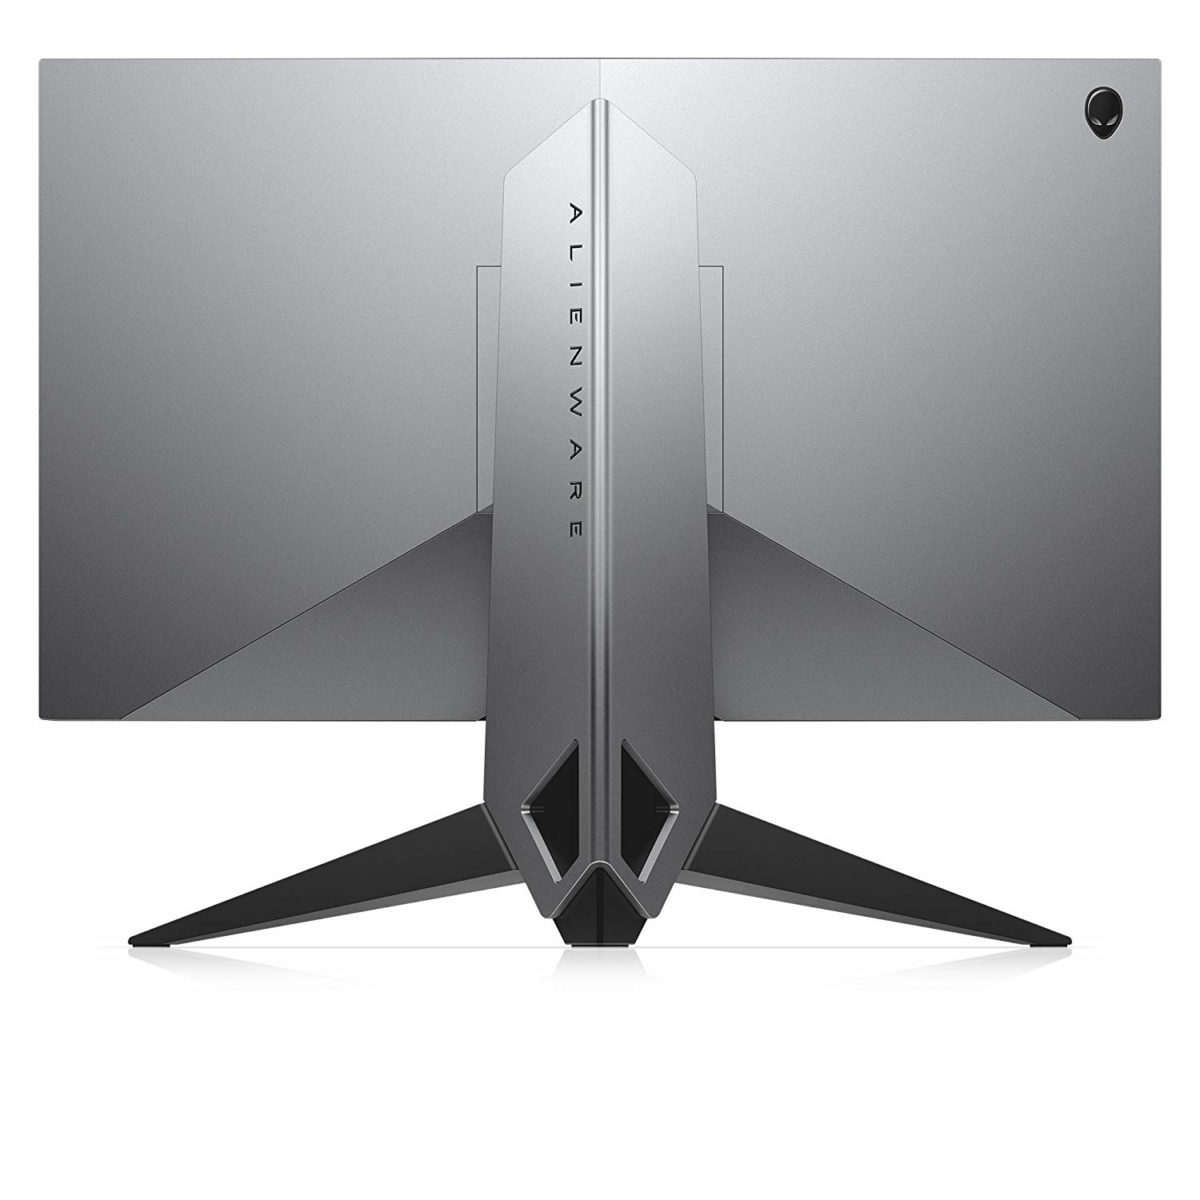 alienware AW2518Hf 240 hz morocco